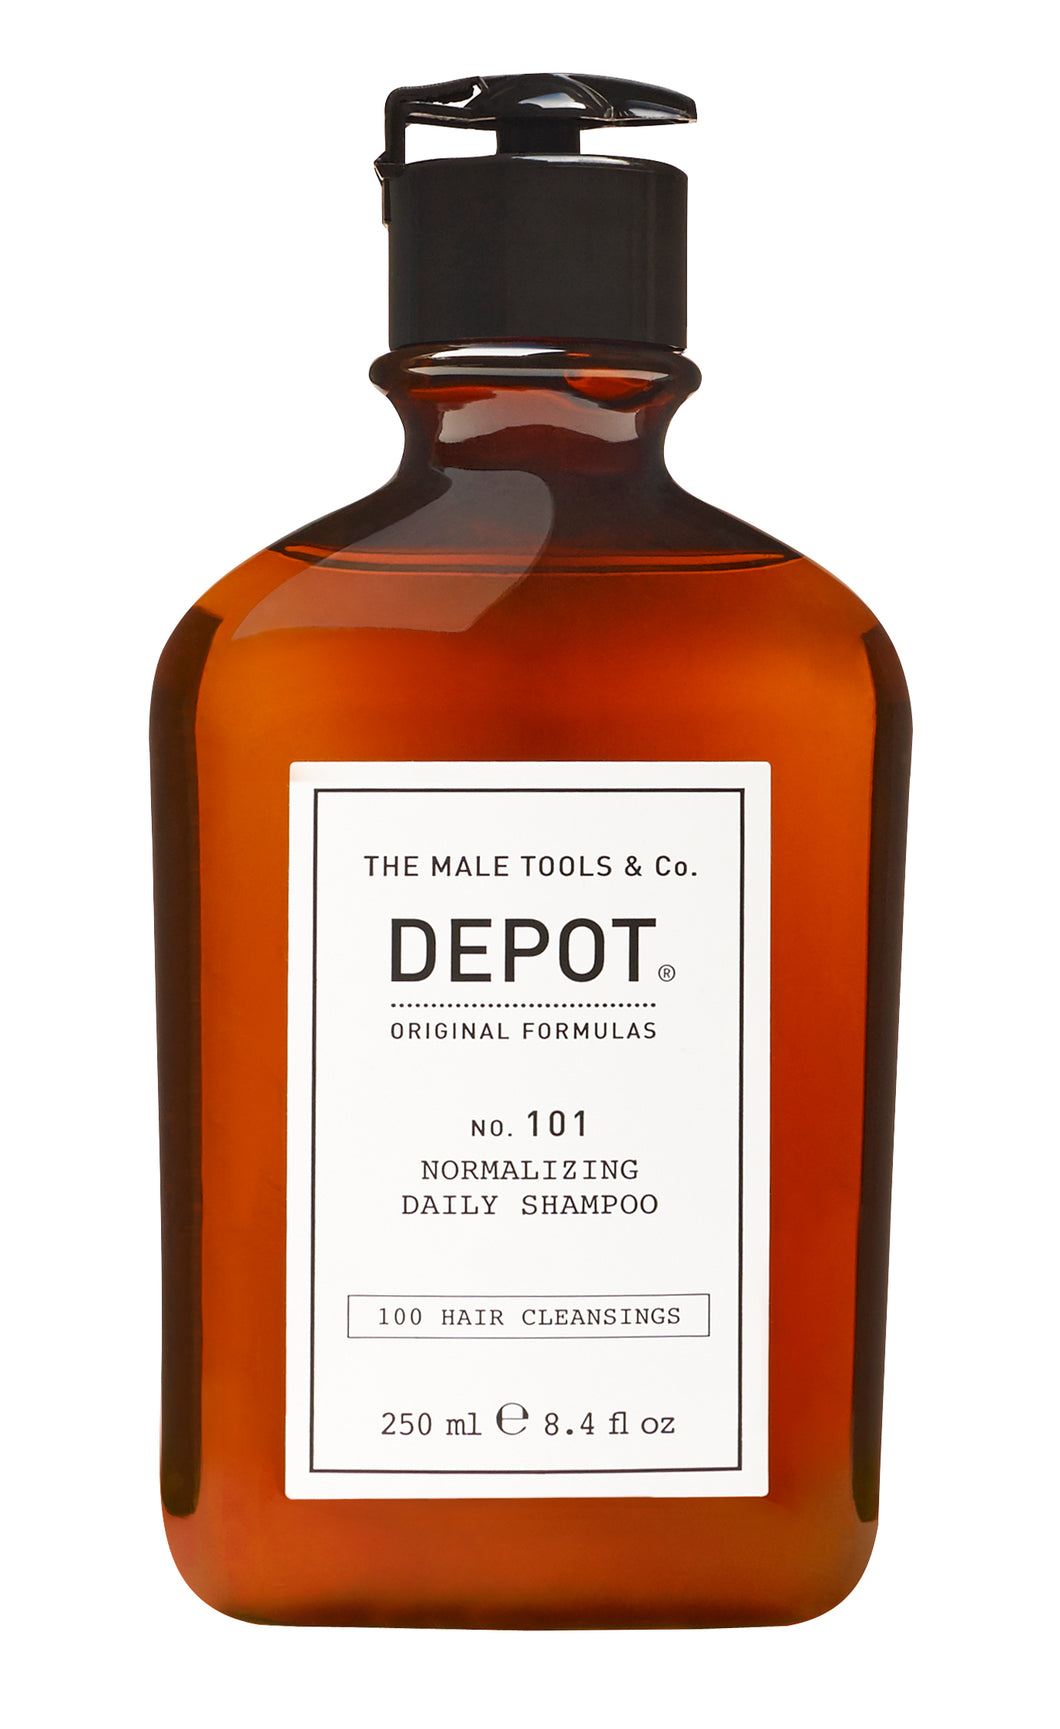 DEPOT MALE TOOL NO. 101 NORMALIZING DAILY SHAMPOO